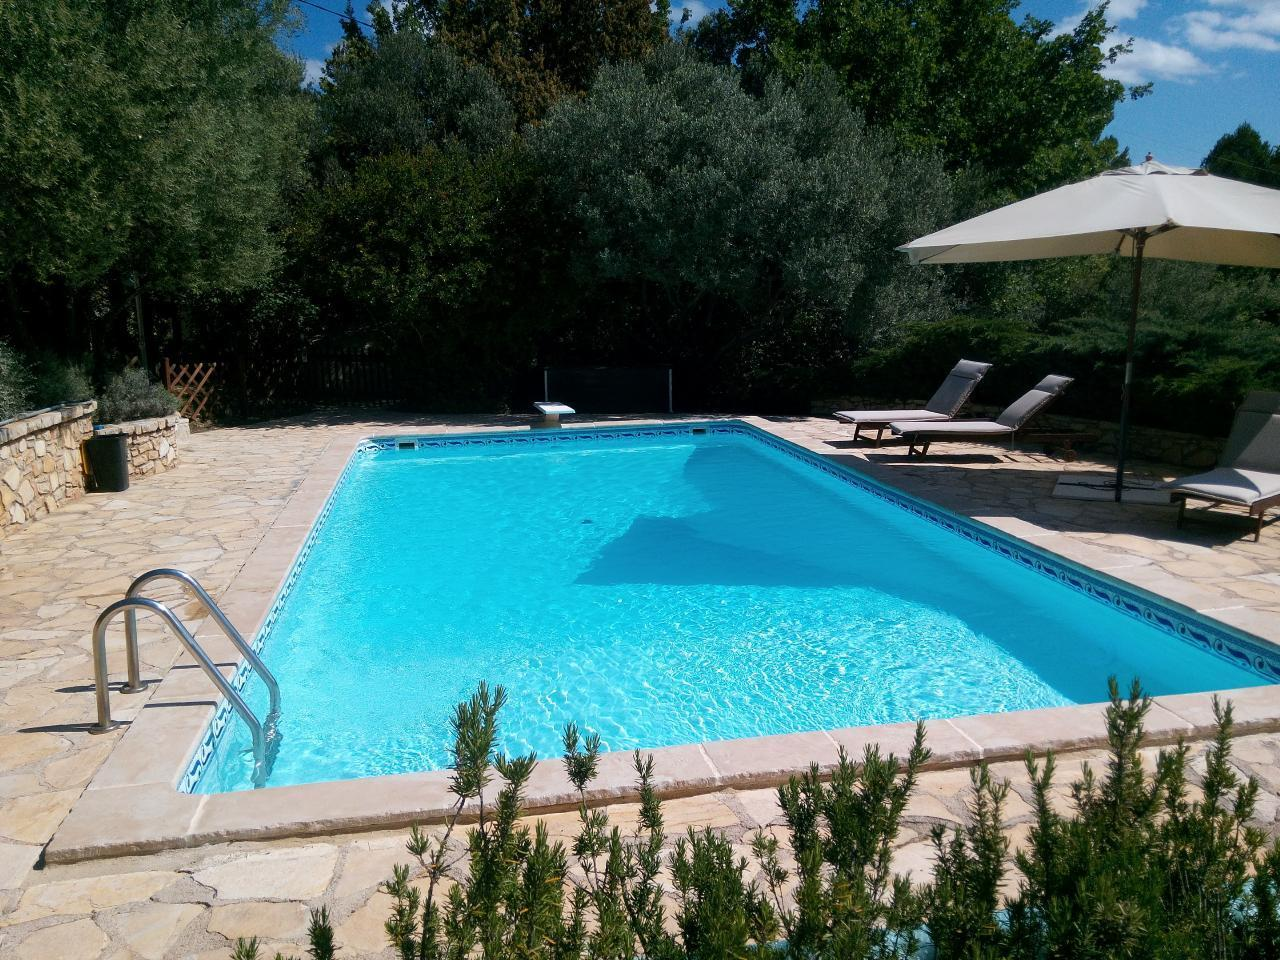 Holiday house Nettes Ferienhaus mit Pool in Cotignac in der Provence (2675449), Cotignac, Var, Provence - Alps - Côte d'Azur, France, picture 2